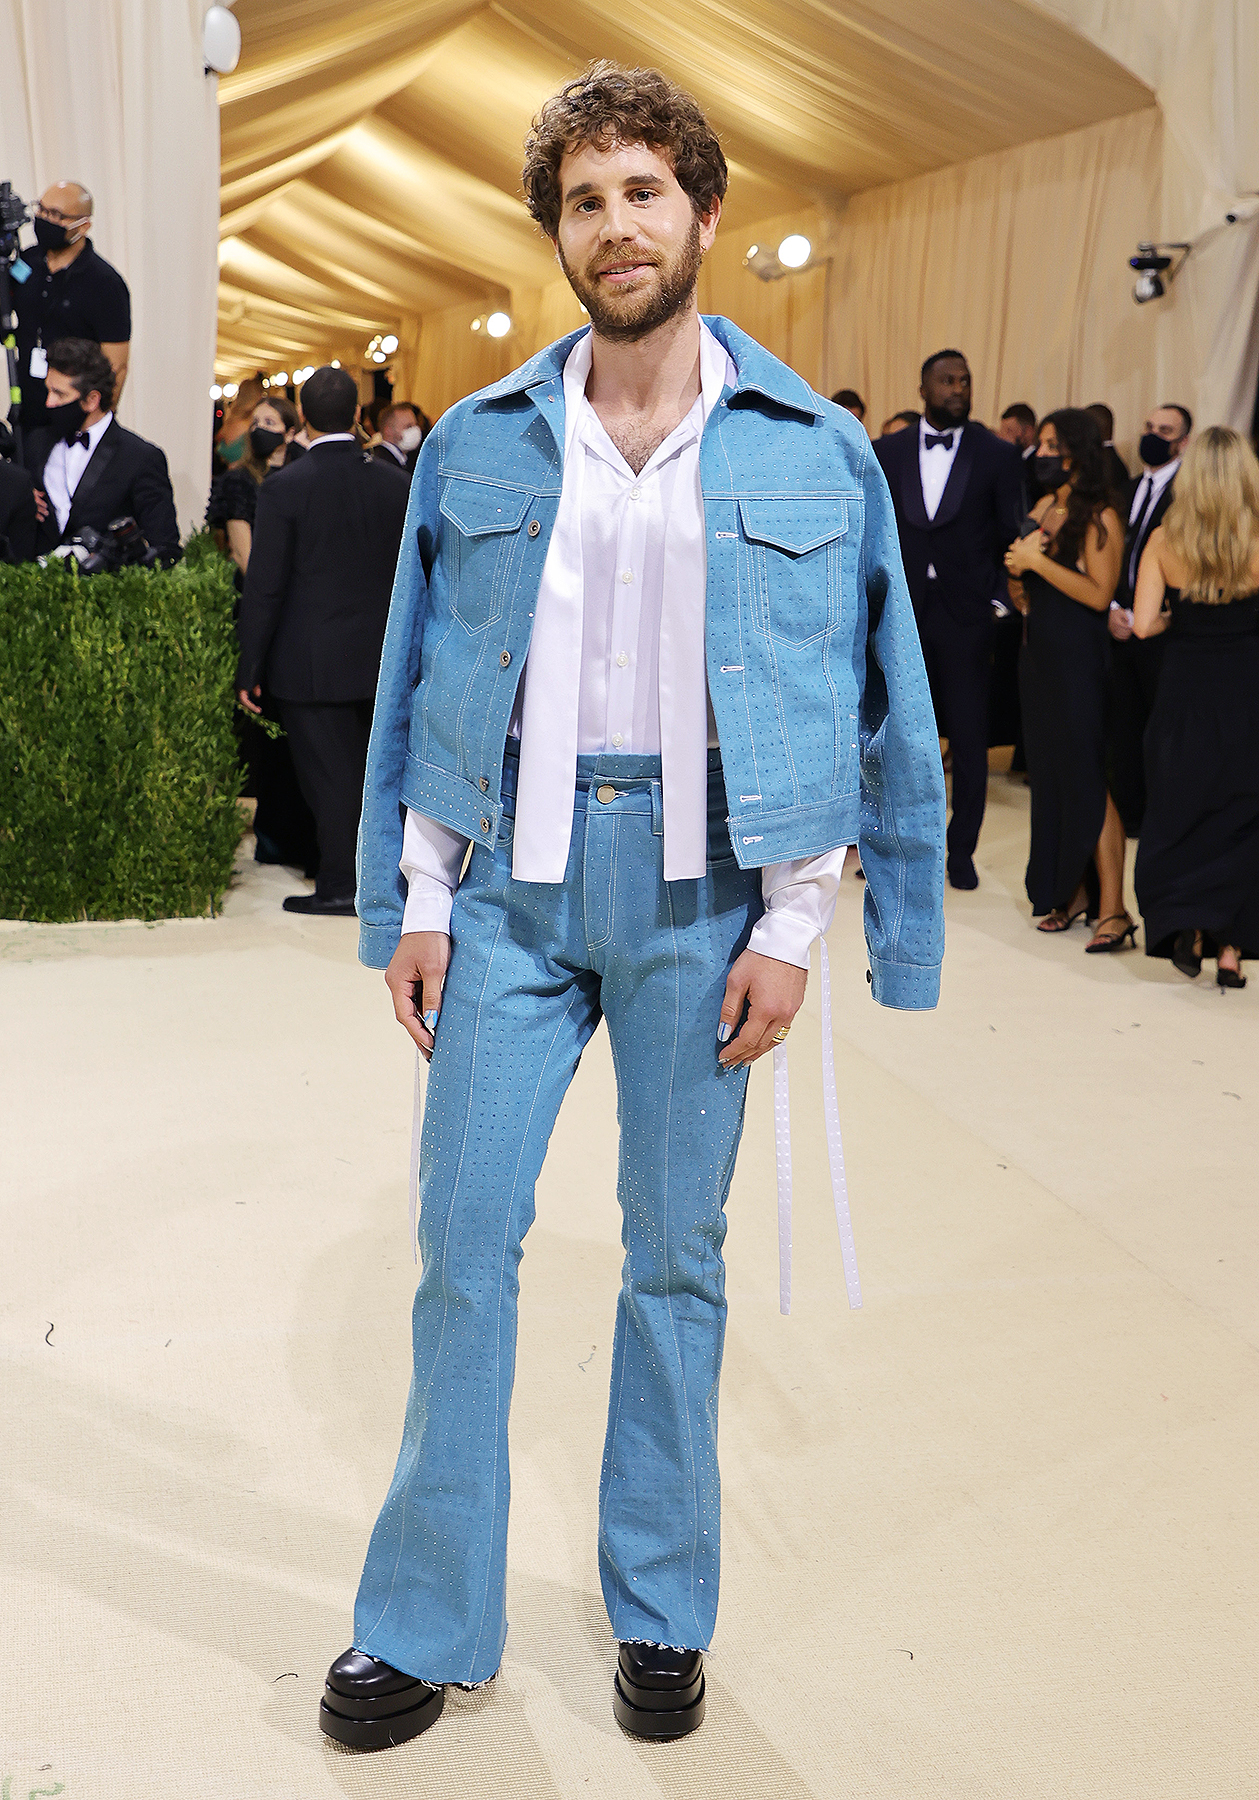 Ben Platt attends The 2021 Met Gala Celebrating In America: A Lexicon Of Fashion at Metropolitan Museum of Art on September 13, 2021 in New York City.